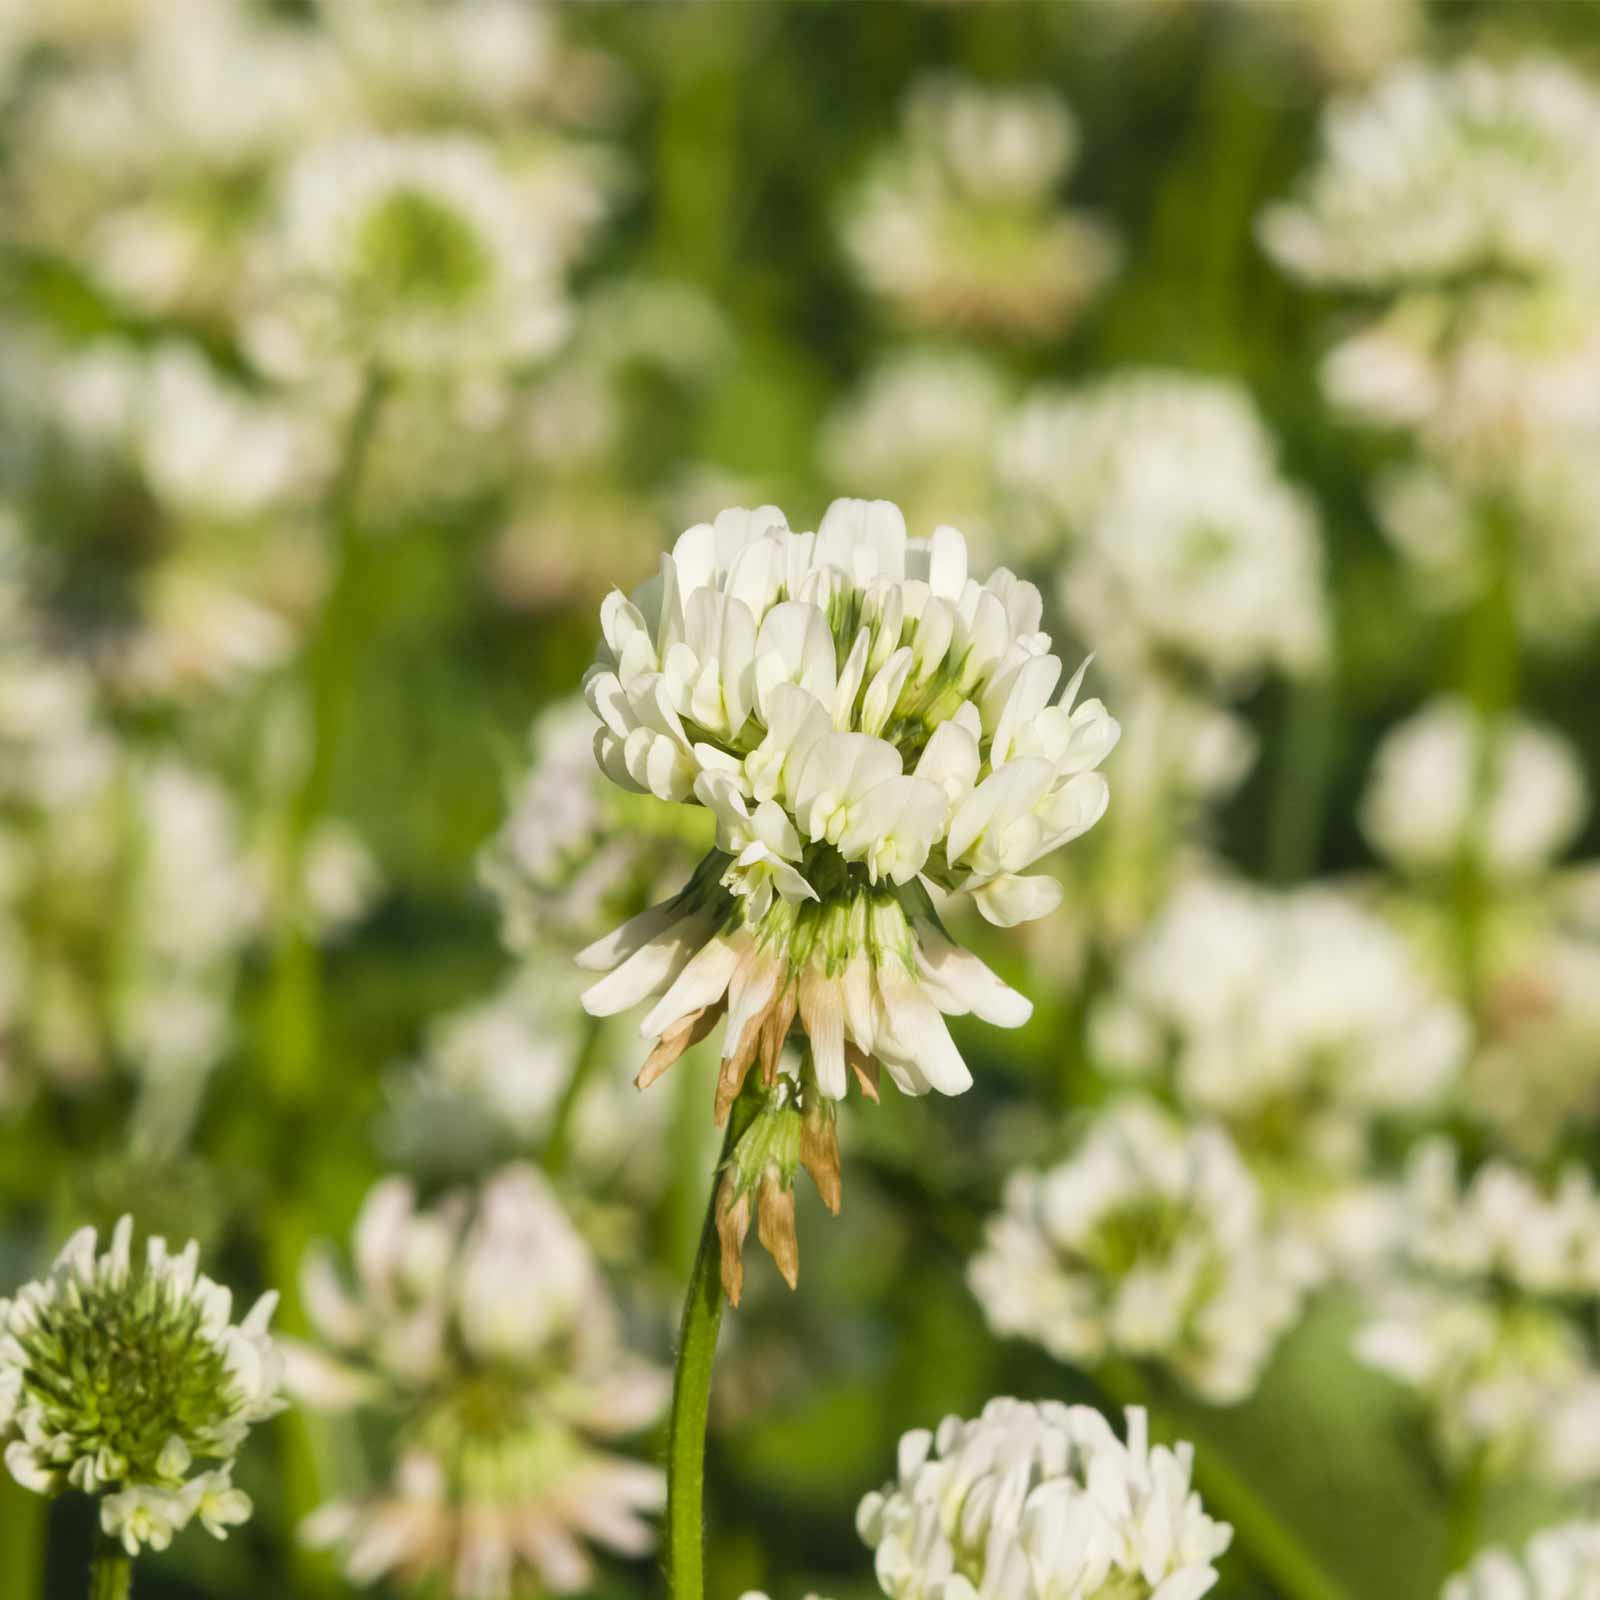 White Dutch Clover Seeds - 4 Oz - Lawn, Pasture & Cover Crop Seeds by Mountain Valley Seeds